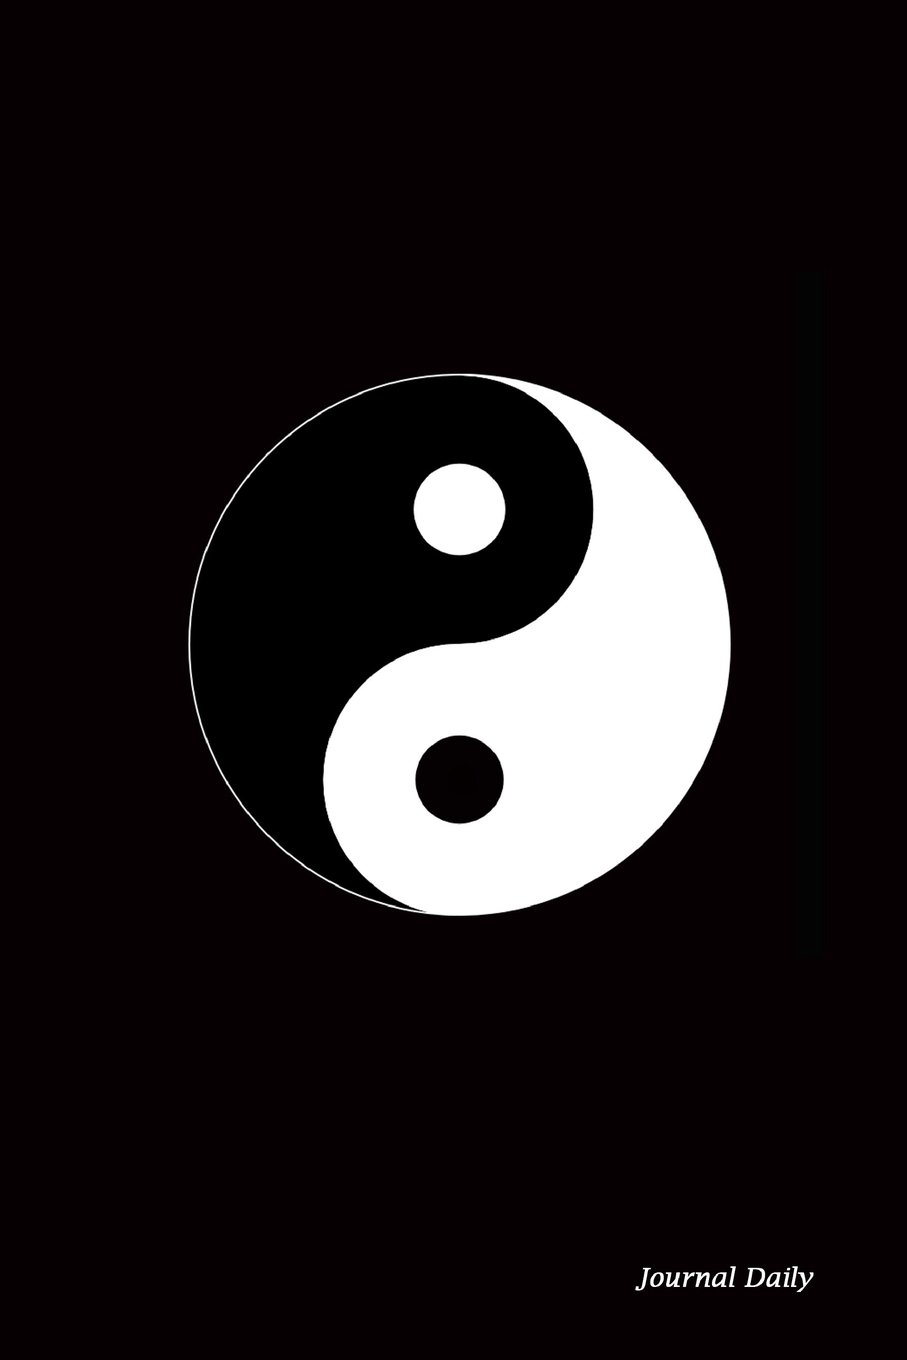 Journal Daily: Yin Yang Symbol, Black Background, Lined